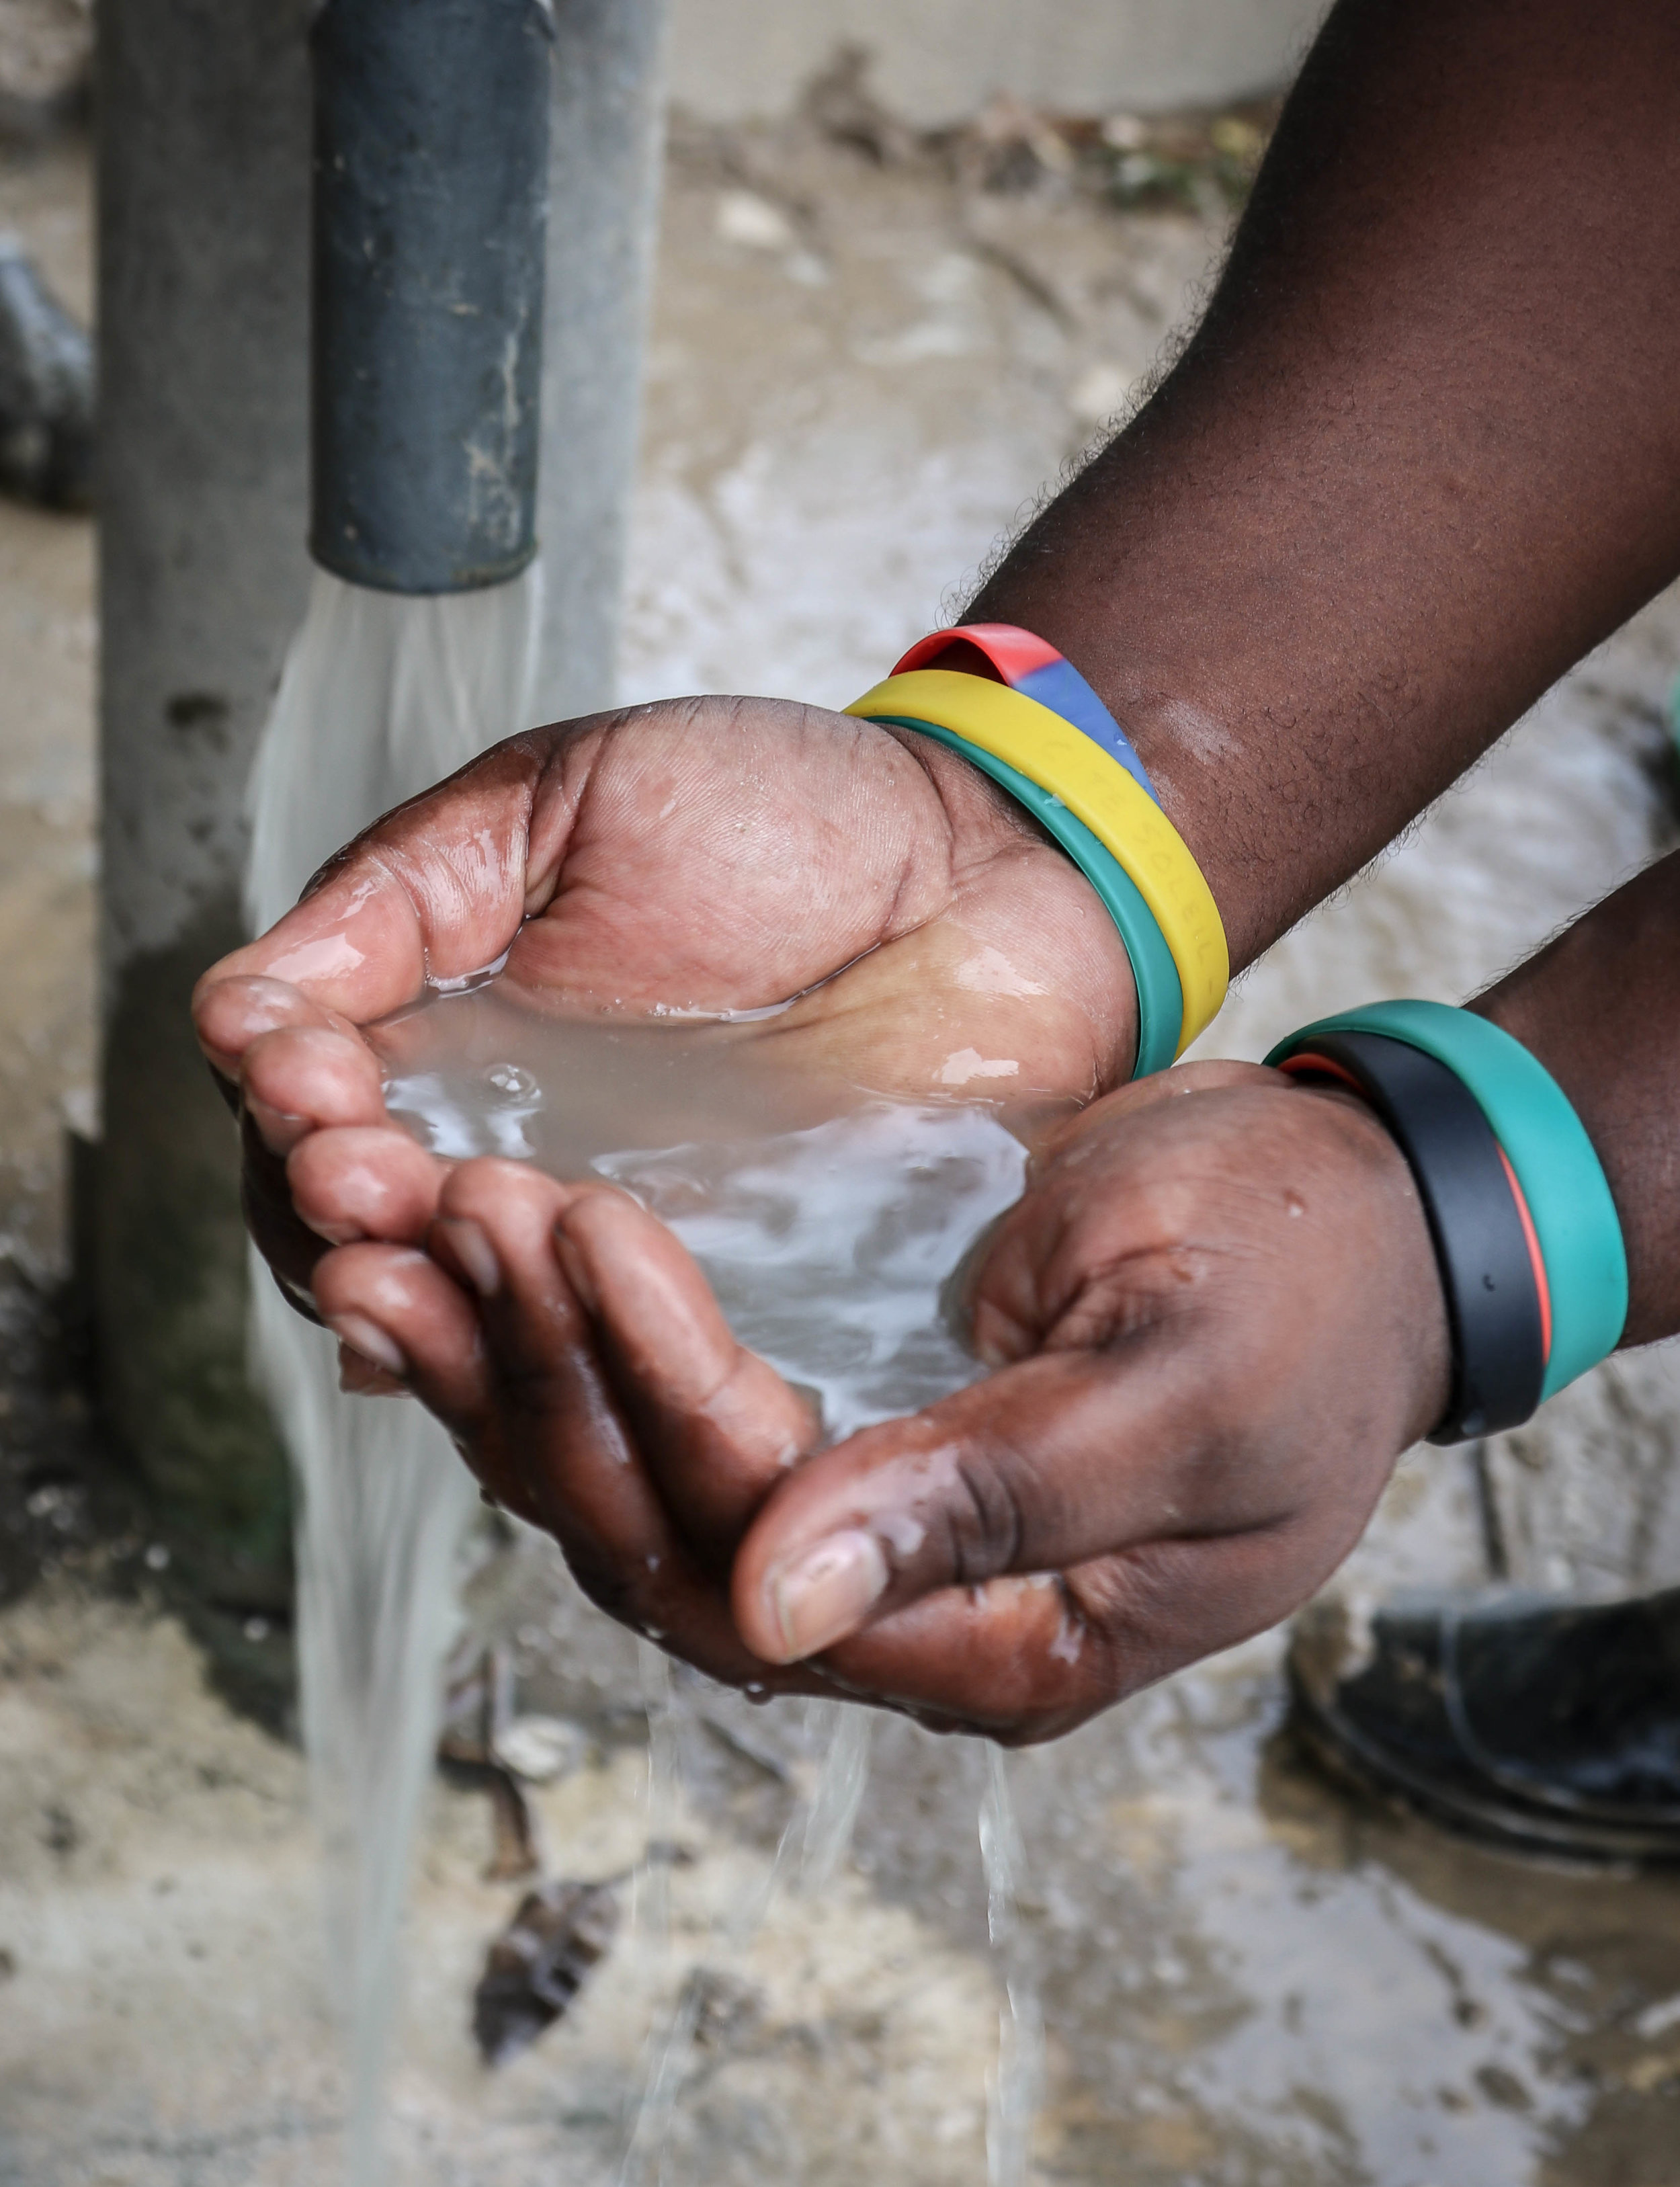 Flooding from Hurricane Matthew contaminated the drinking water for residents in the Voudray community of Cité Soleil, one of the poorest parts of Port-au-Prince.  MCC's rapid response  included water purification tablets.